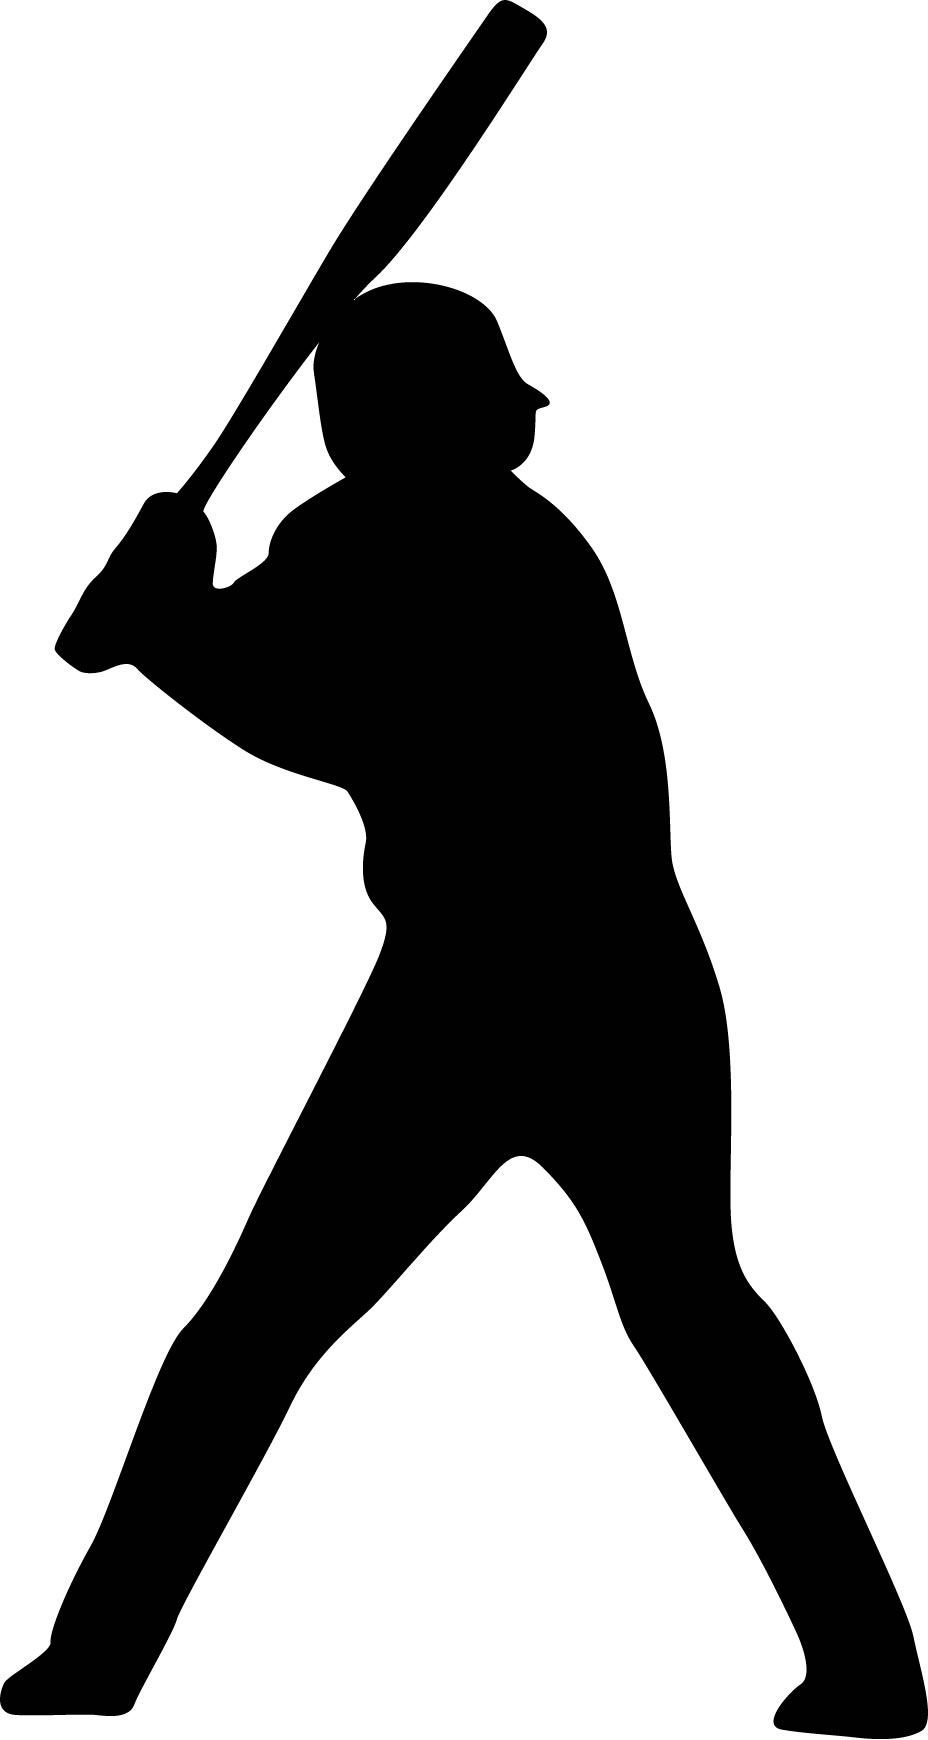 Baseball Player Silhouette Png